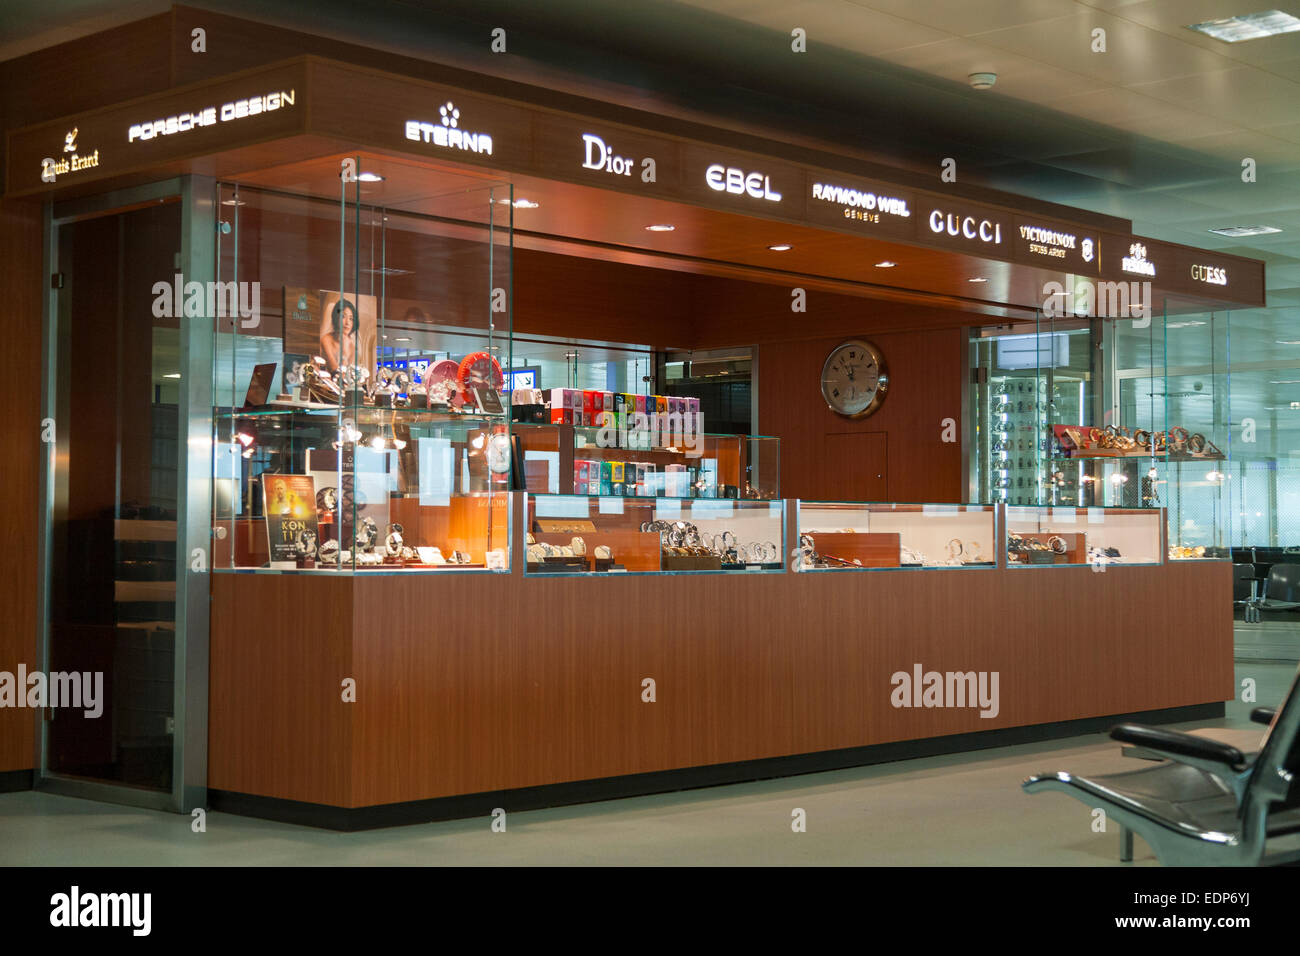 Shop / store in selling Swiss made wrist watches in International terminal departure hall, Geneva / Geneve Airport, - Stock Image